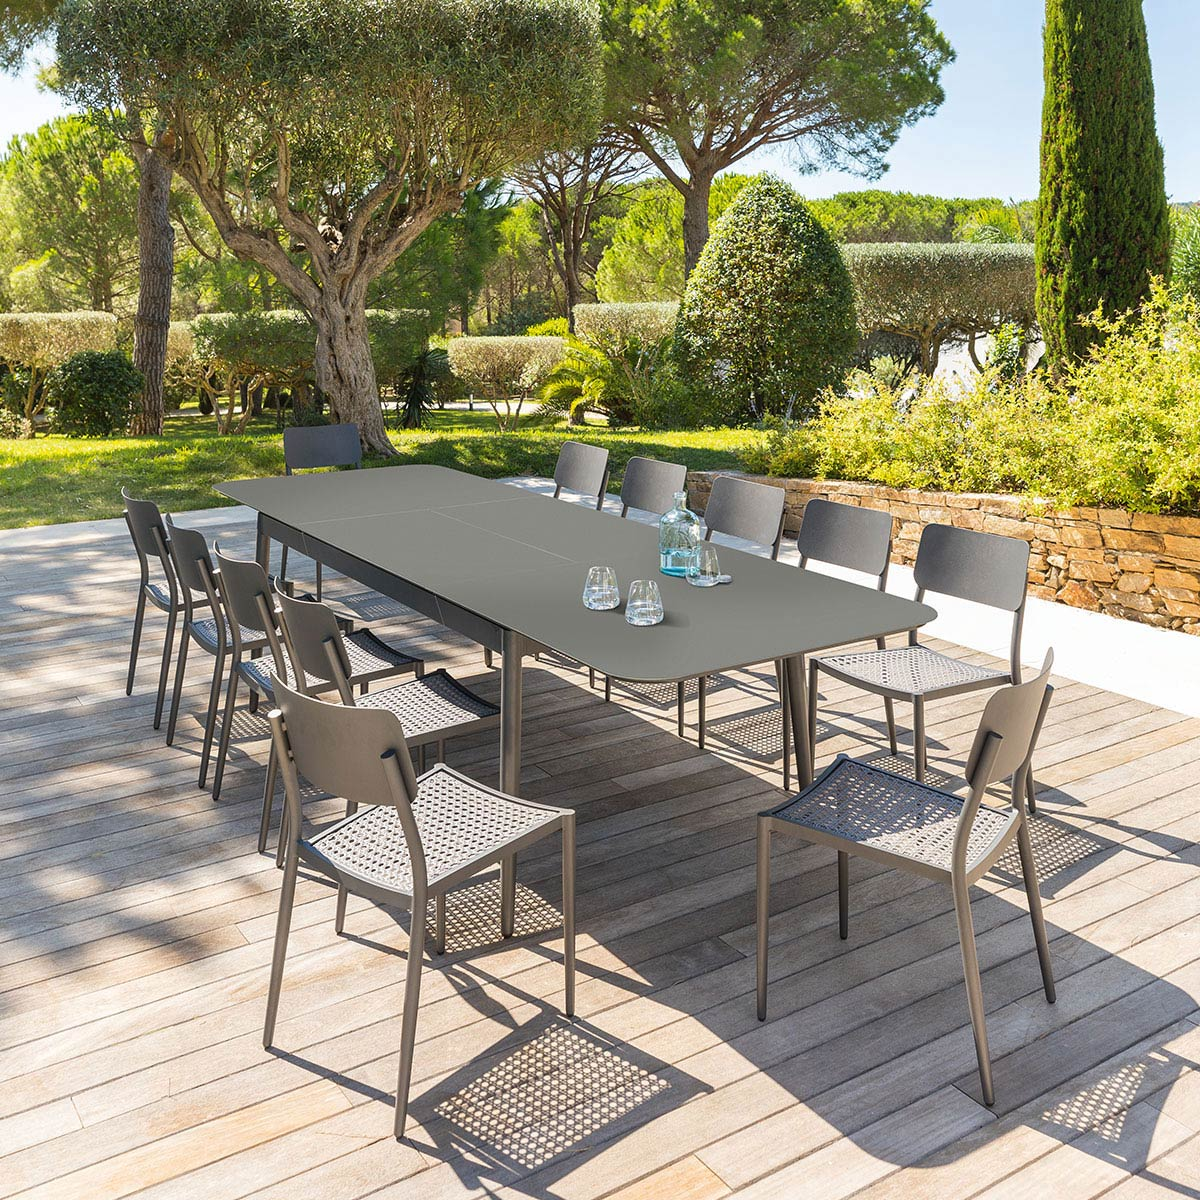 Table de jardin extensible Iceland Graphite Hespride 12 places